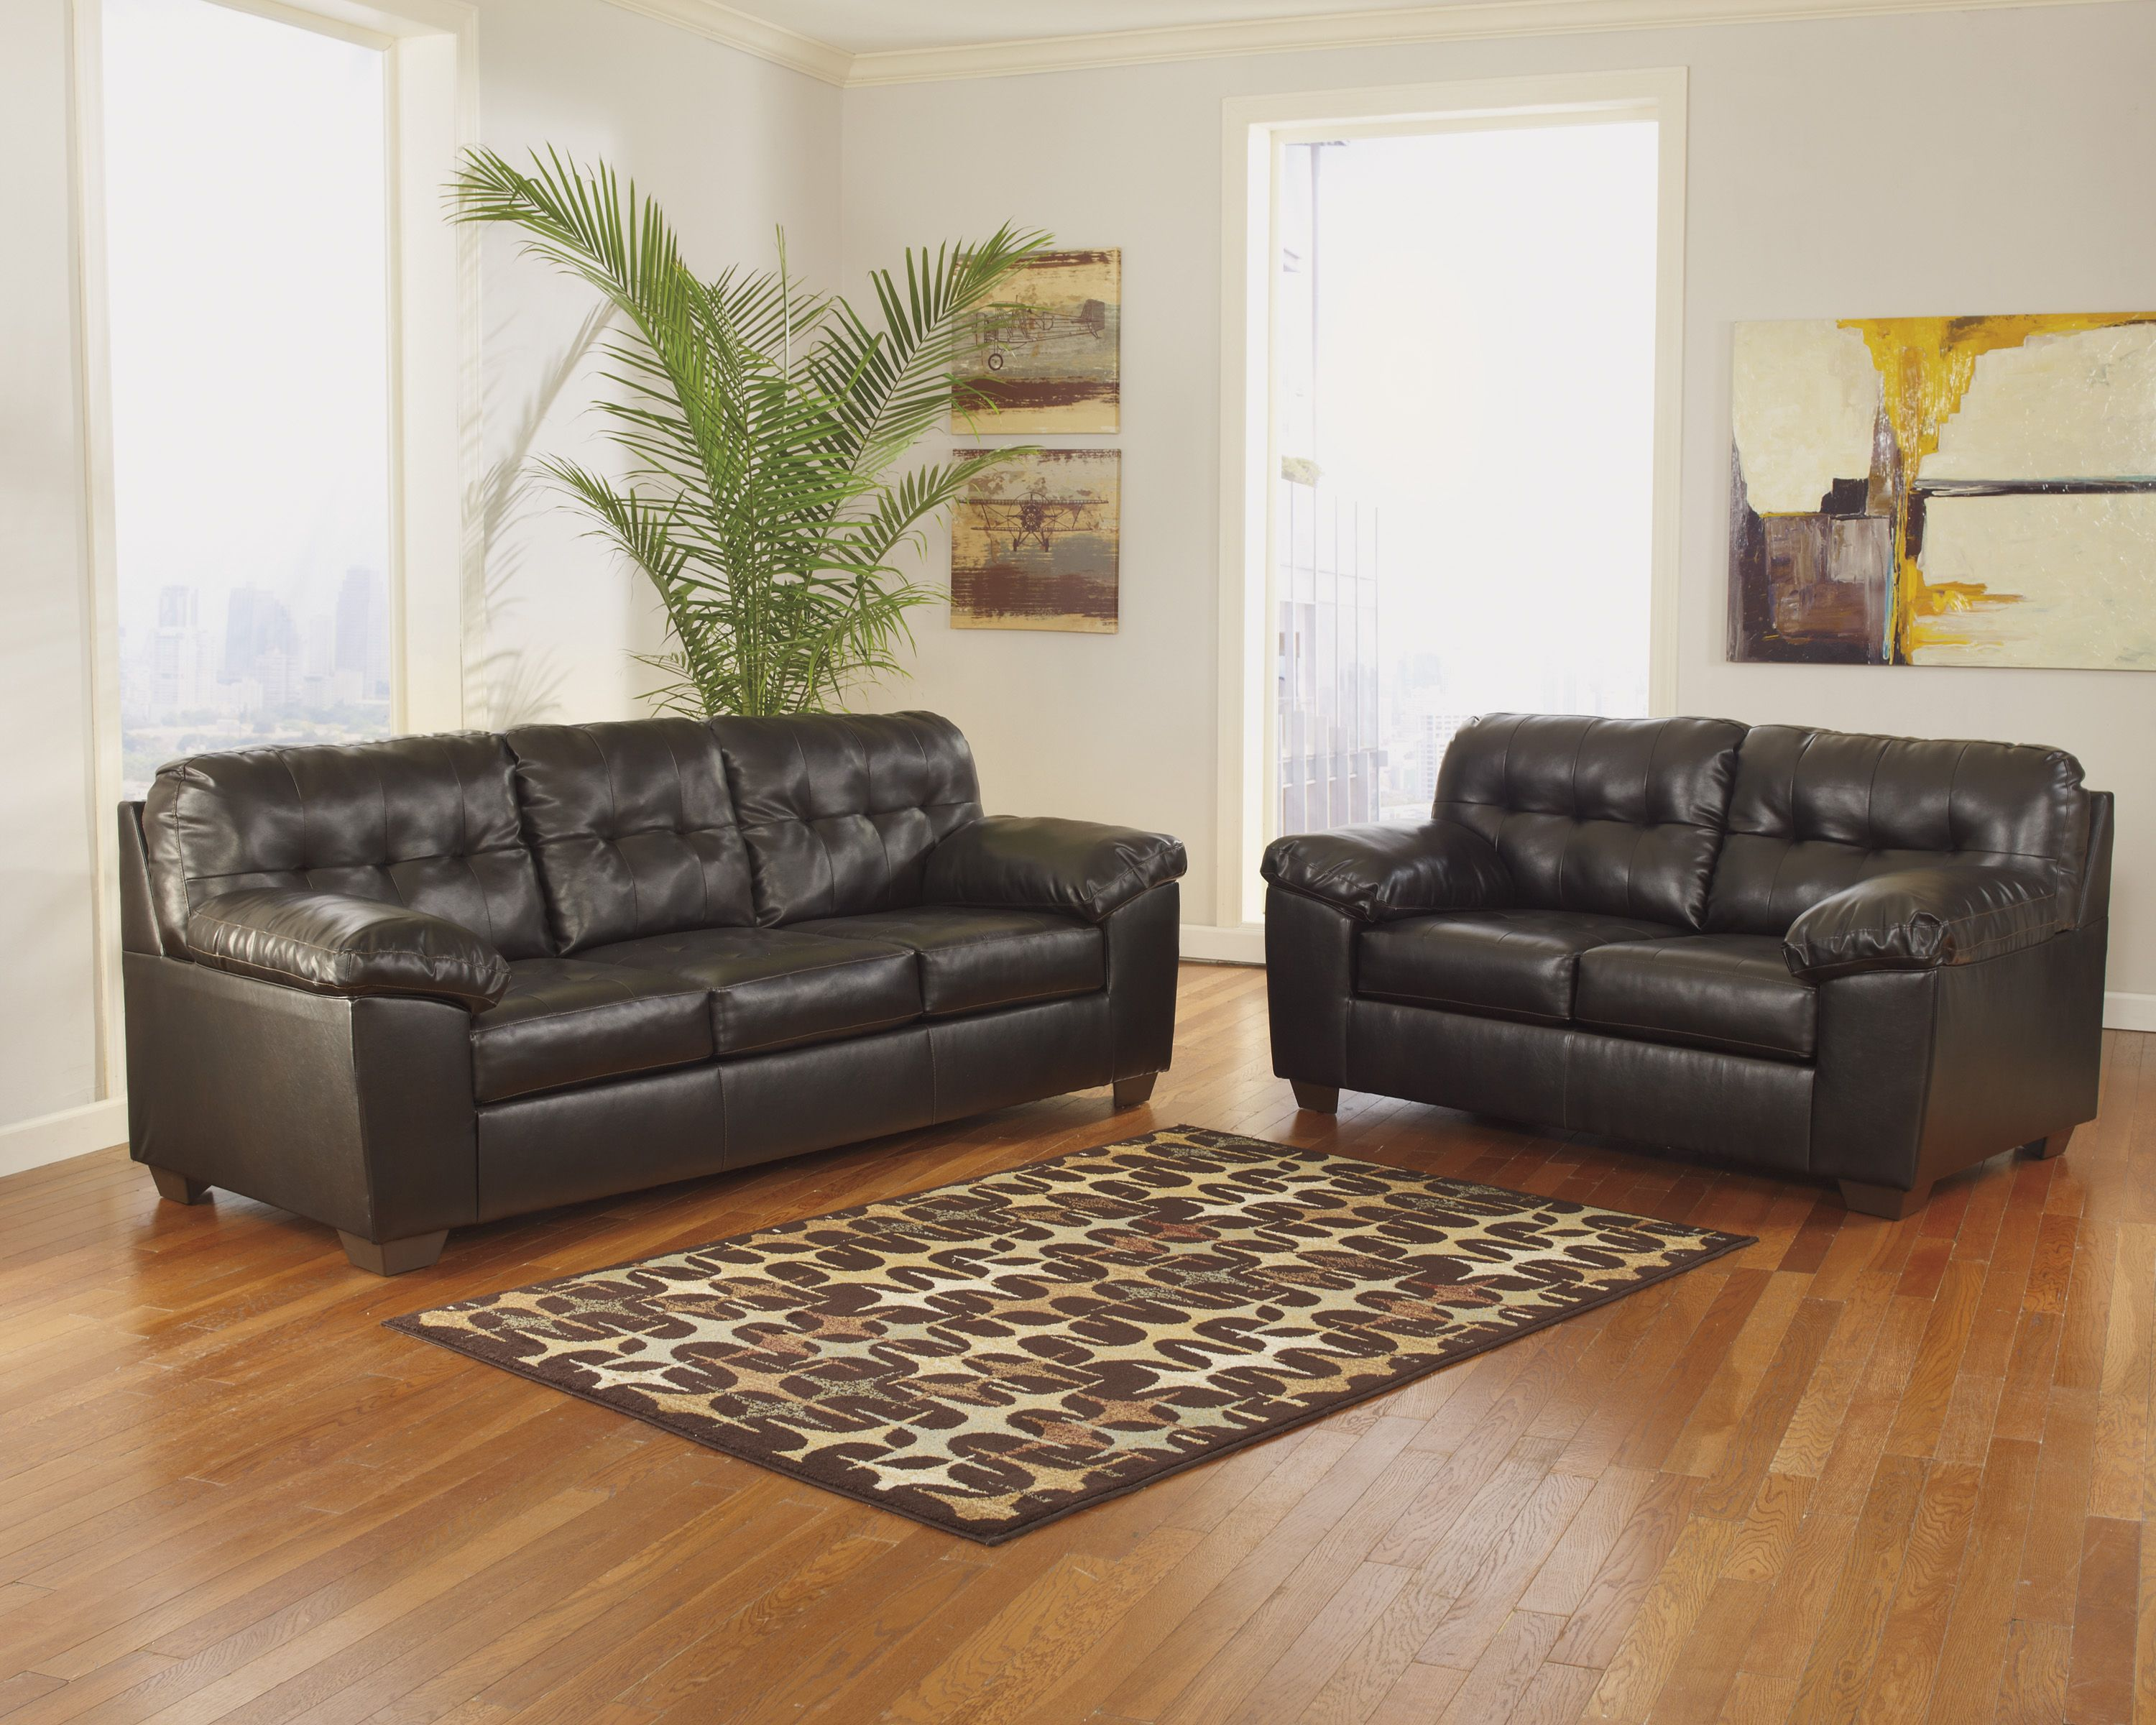 small couches gallery livingroom reclining shaped stunning sofas cheap set u recliner furniture of couch at with ashley identifying